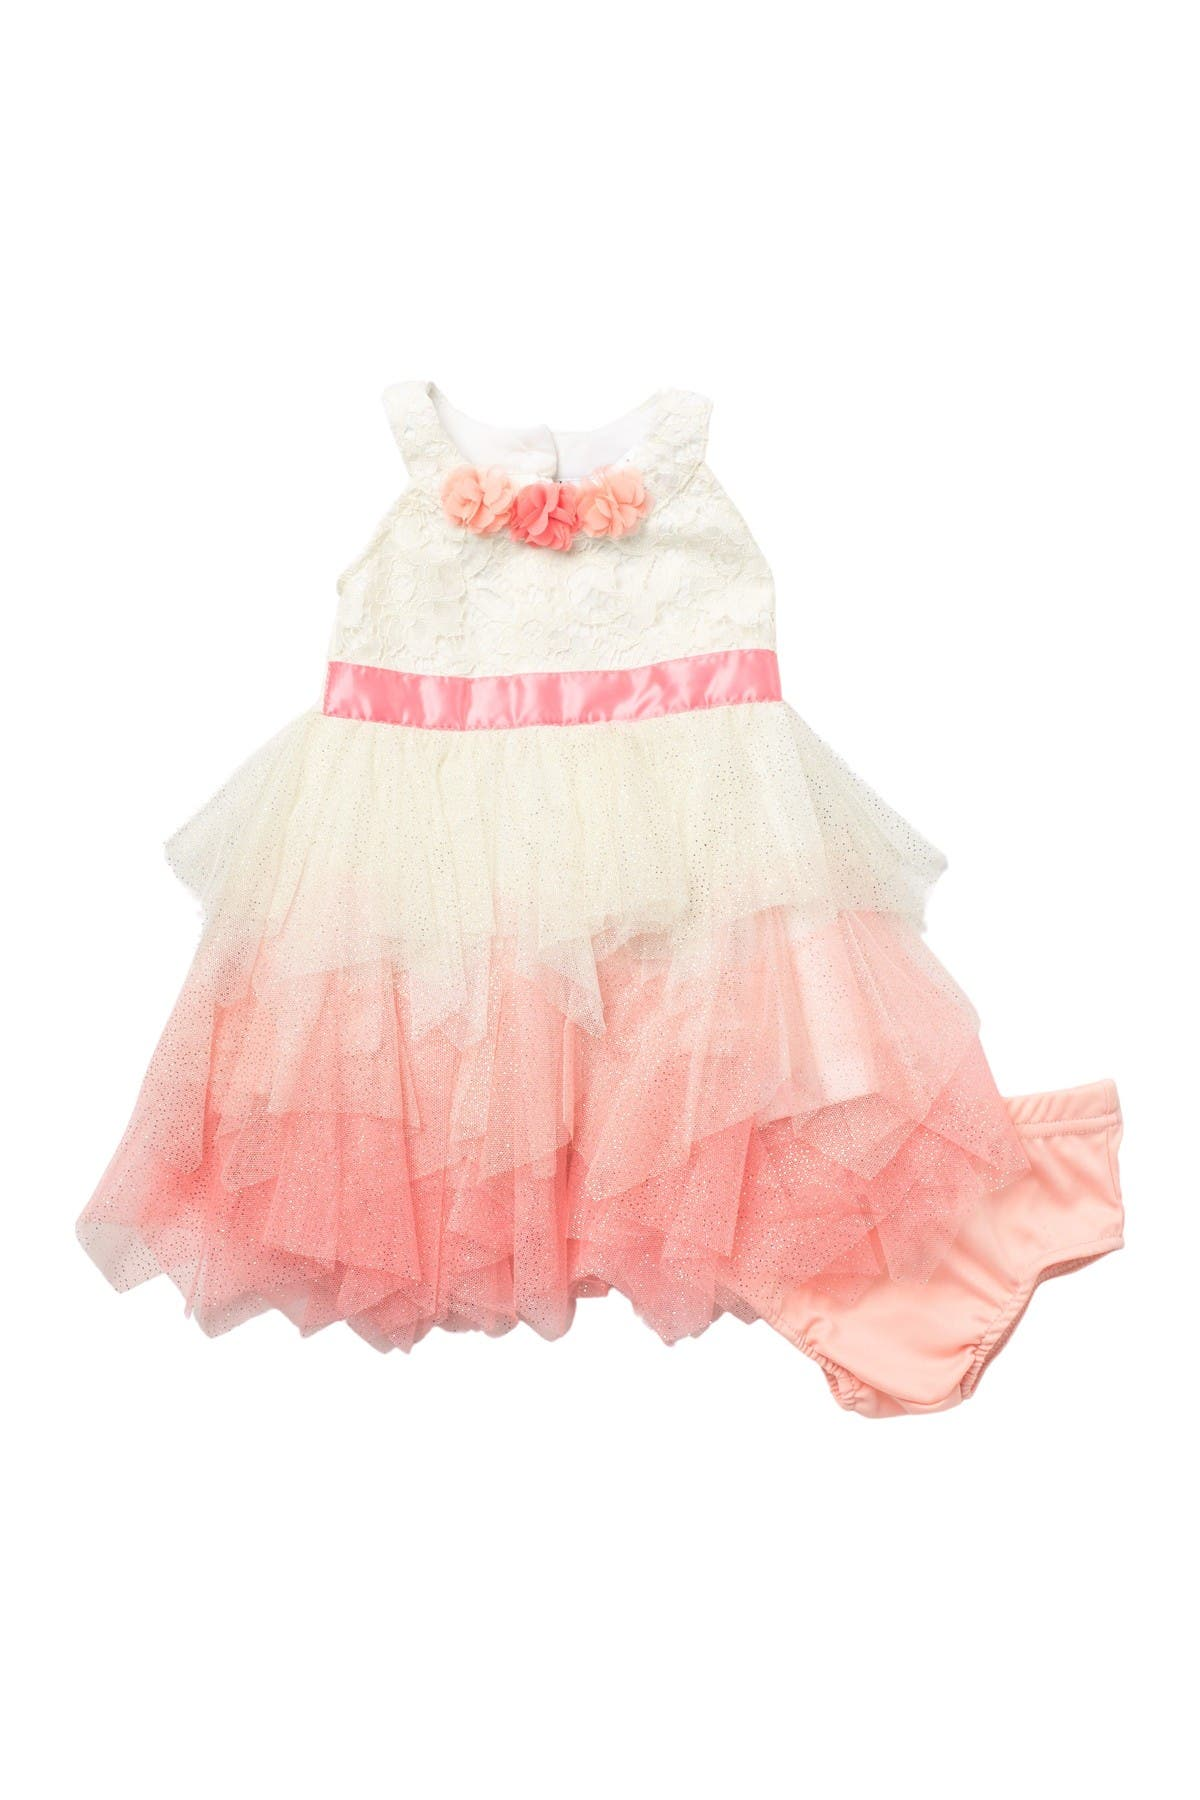 Image of Nicole Miller Tulle Dress & Bloomer Set